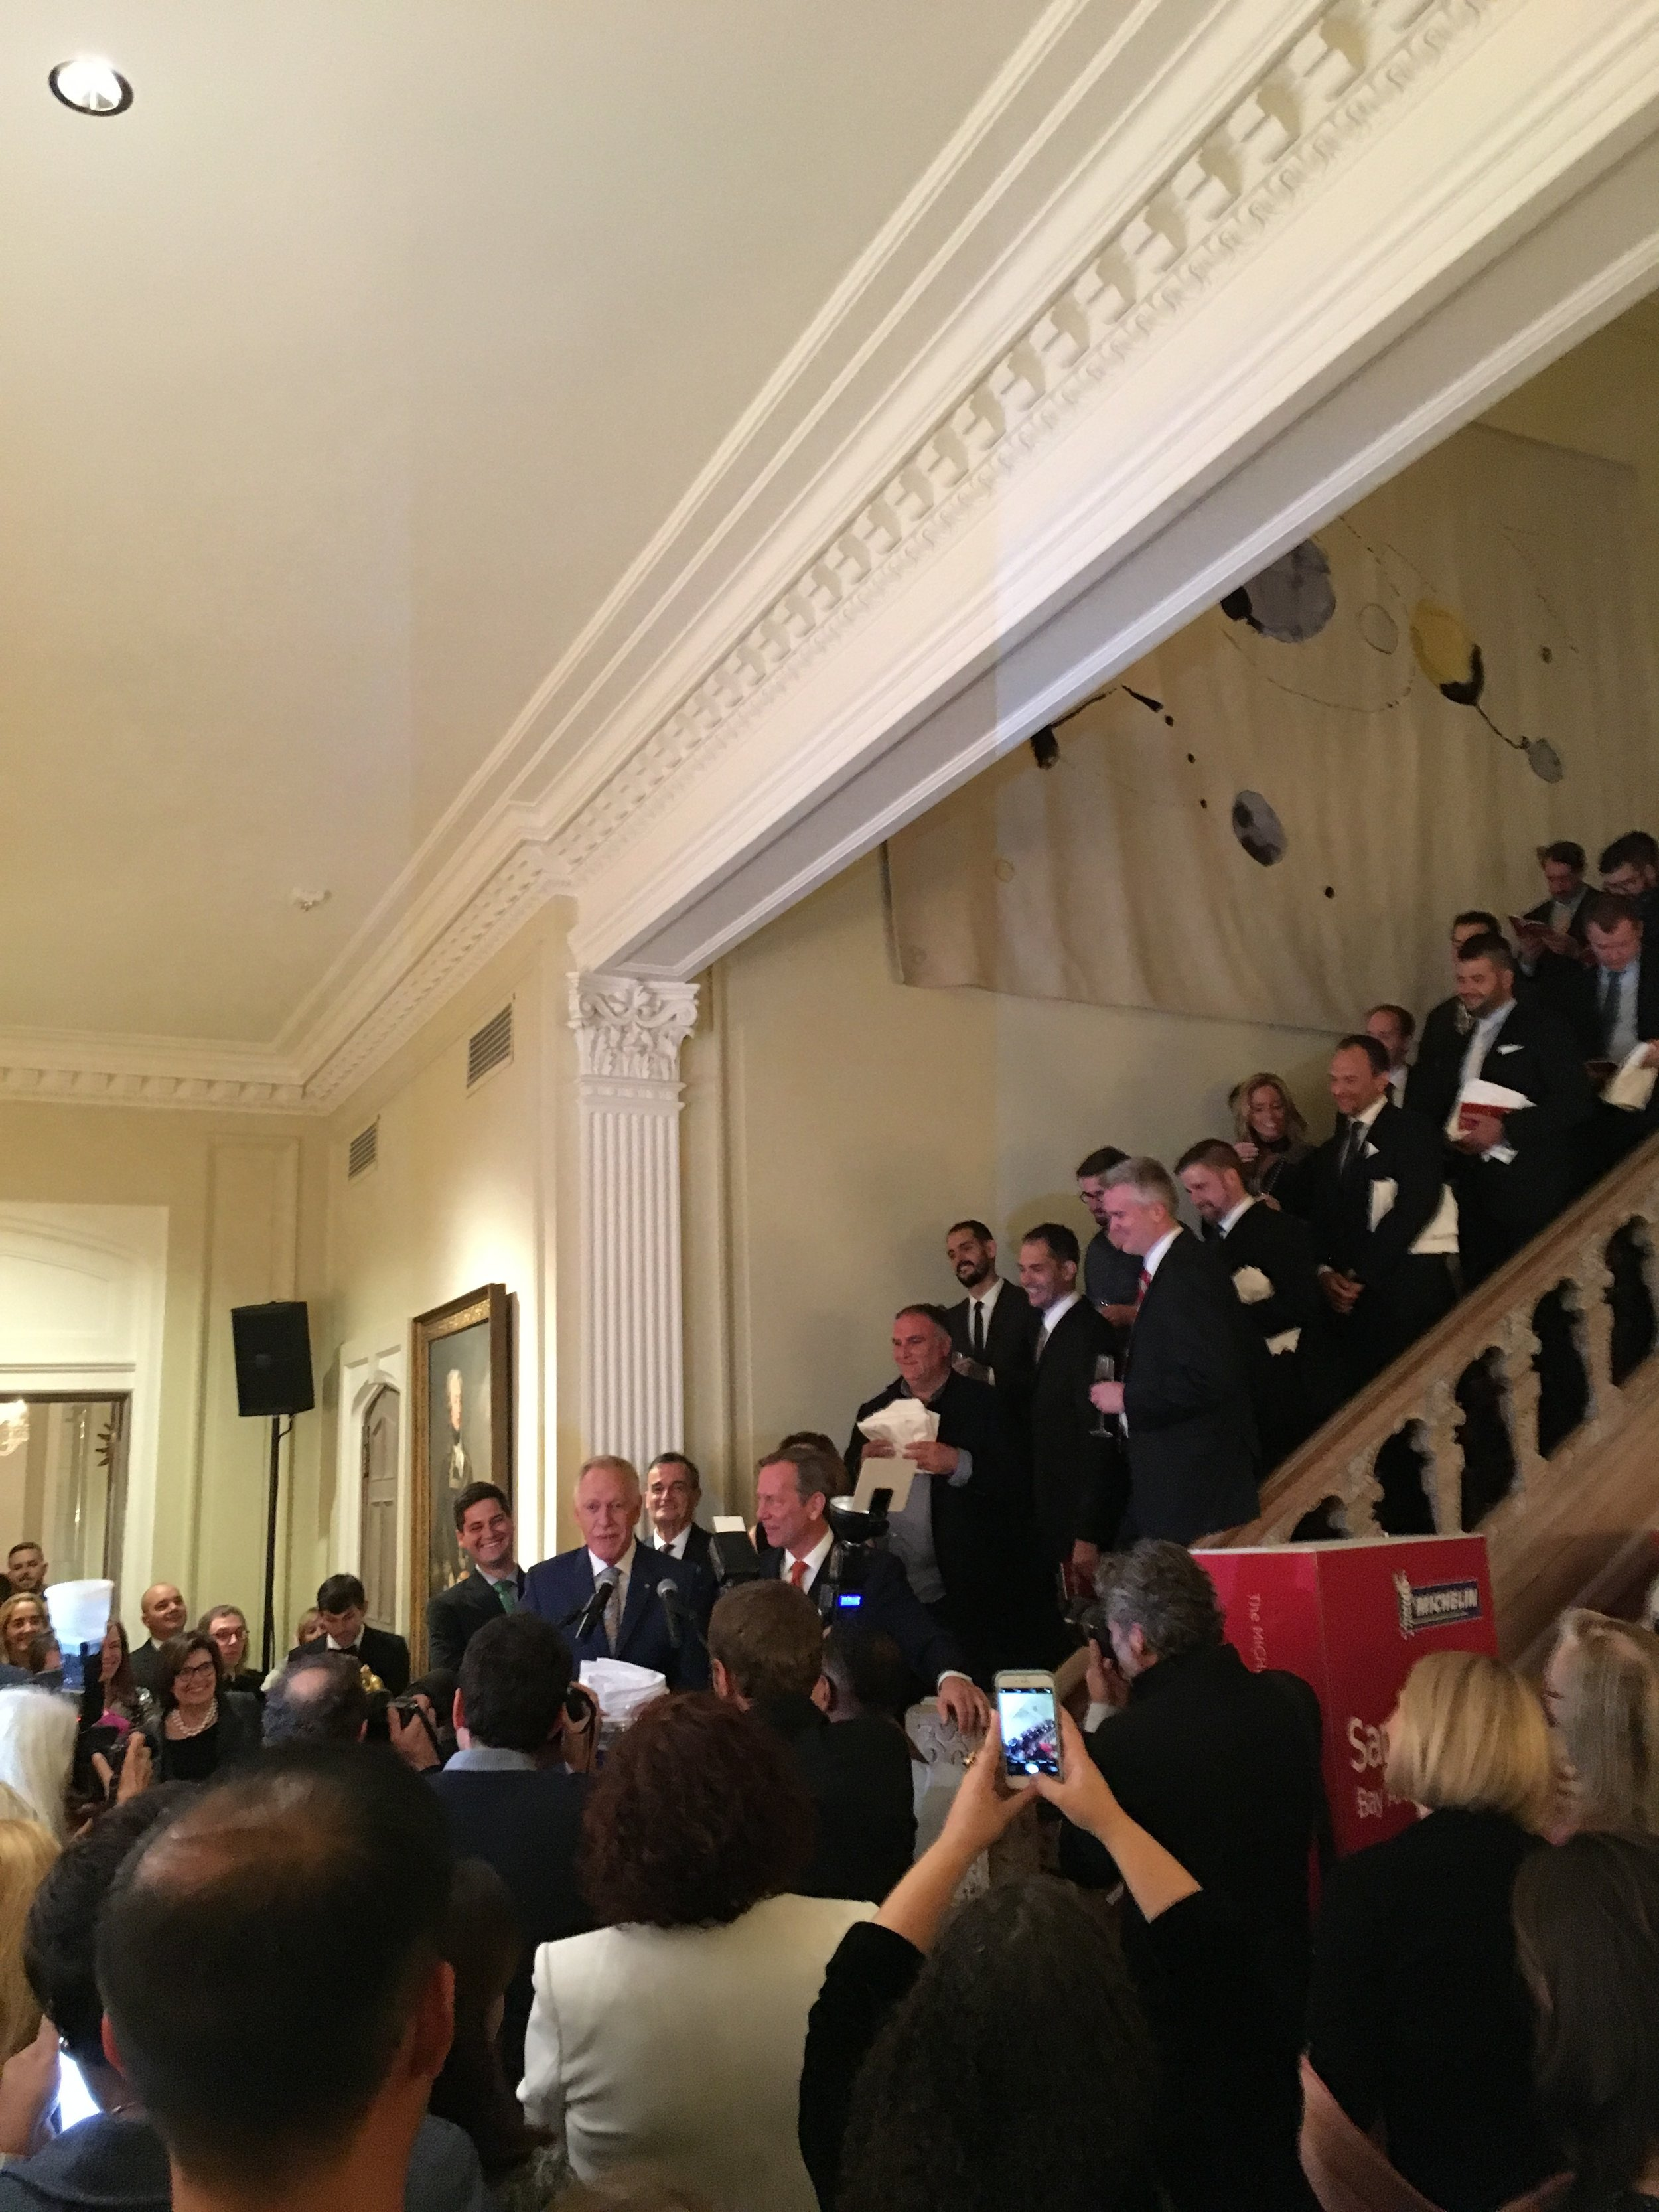 All of the Michelin-starred Chefs with Chef Patrick O'Connell at the mic.